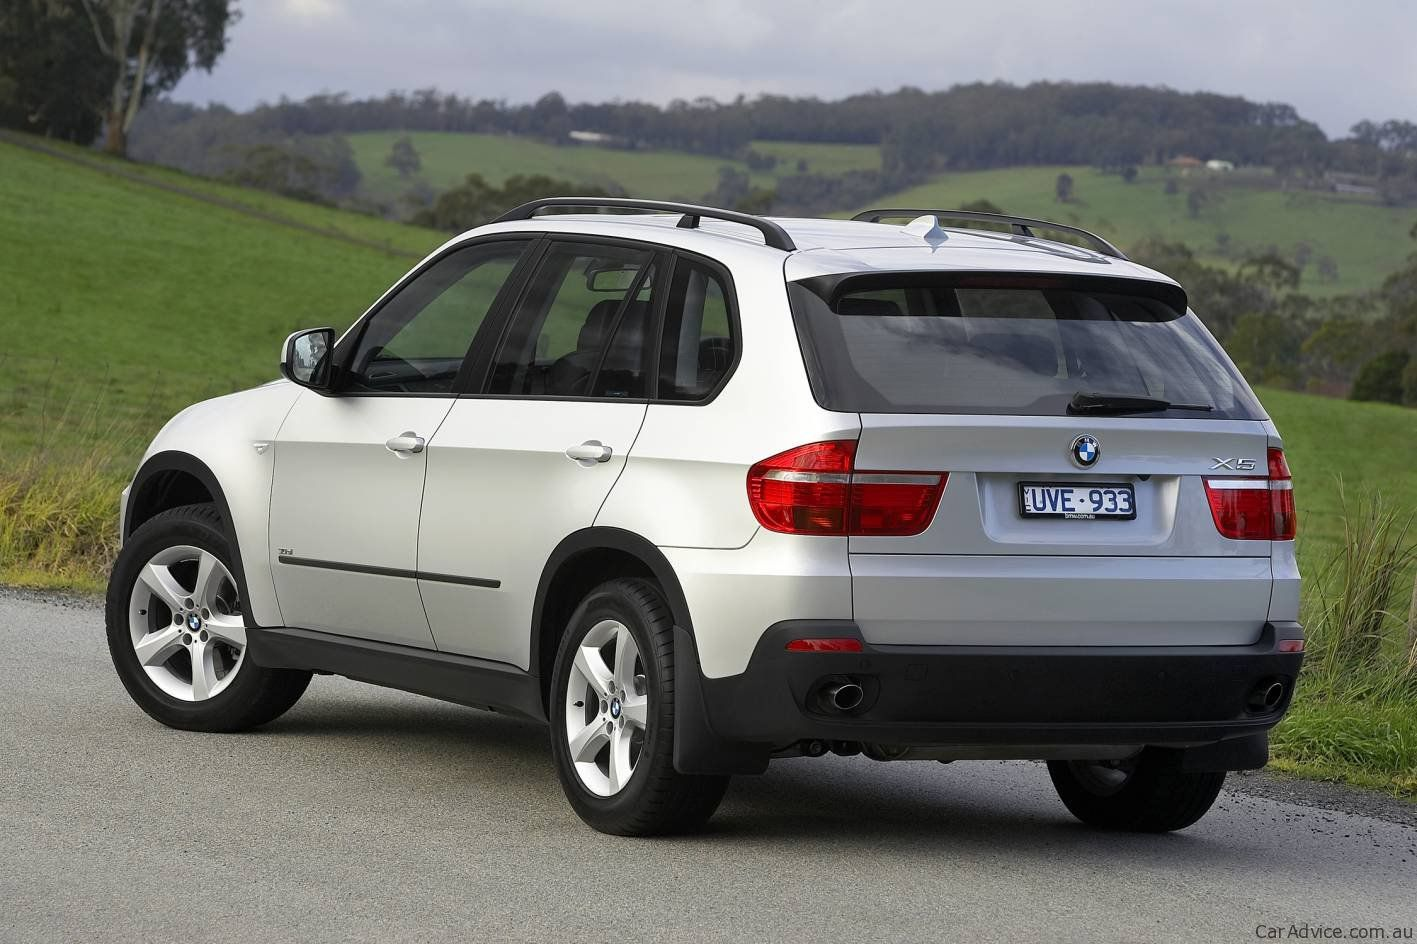 Cool wallpapers bmw x 5 wallpapers check out these bimmers